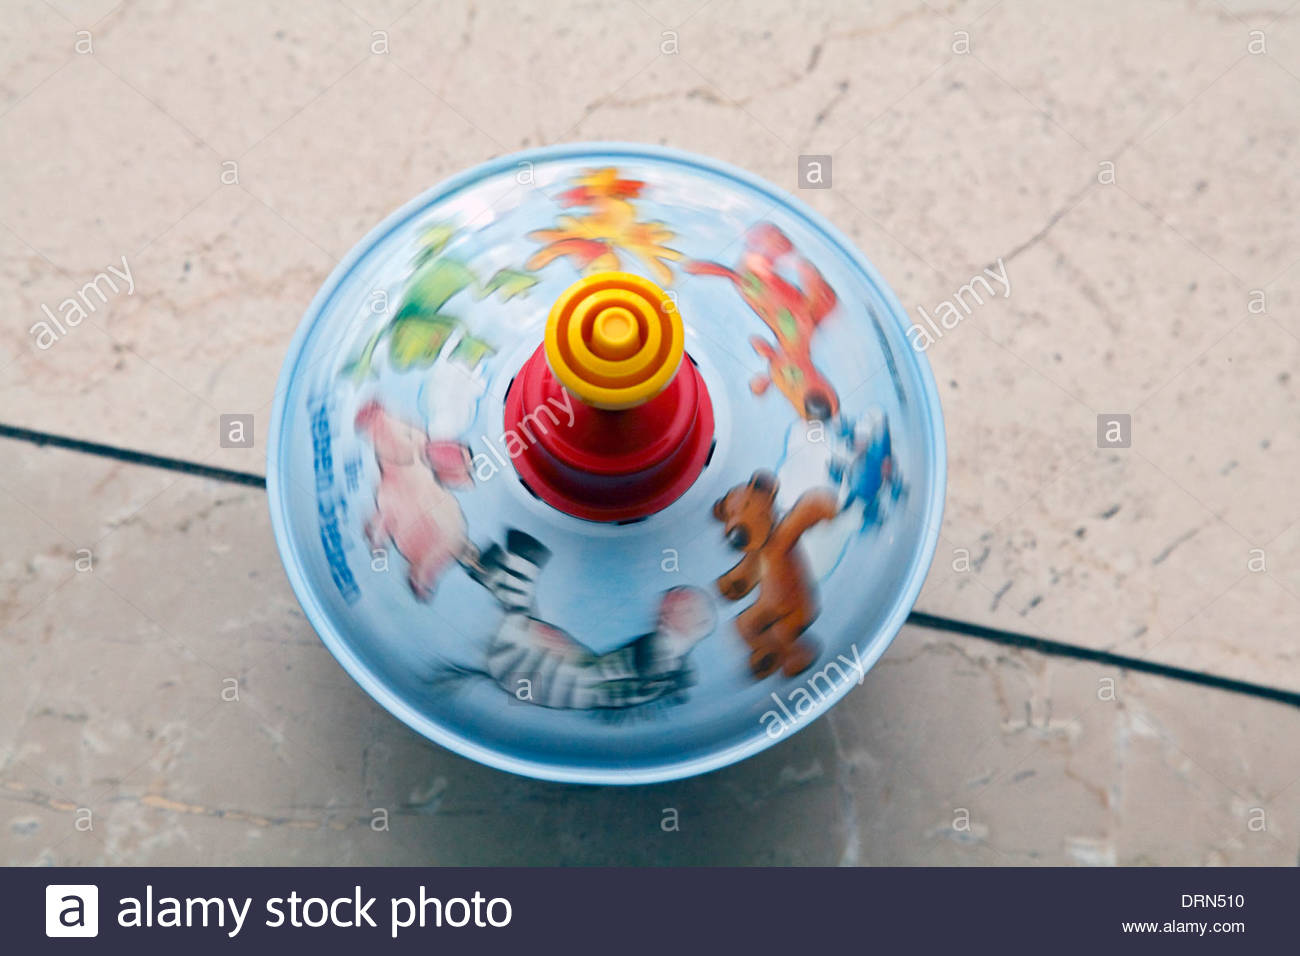 Toy, rotating humming top. - Stock Image